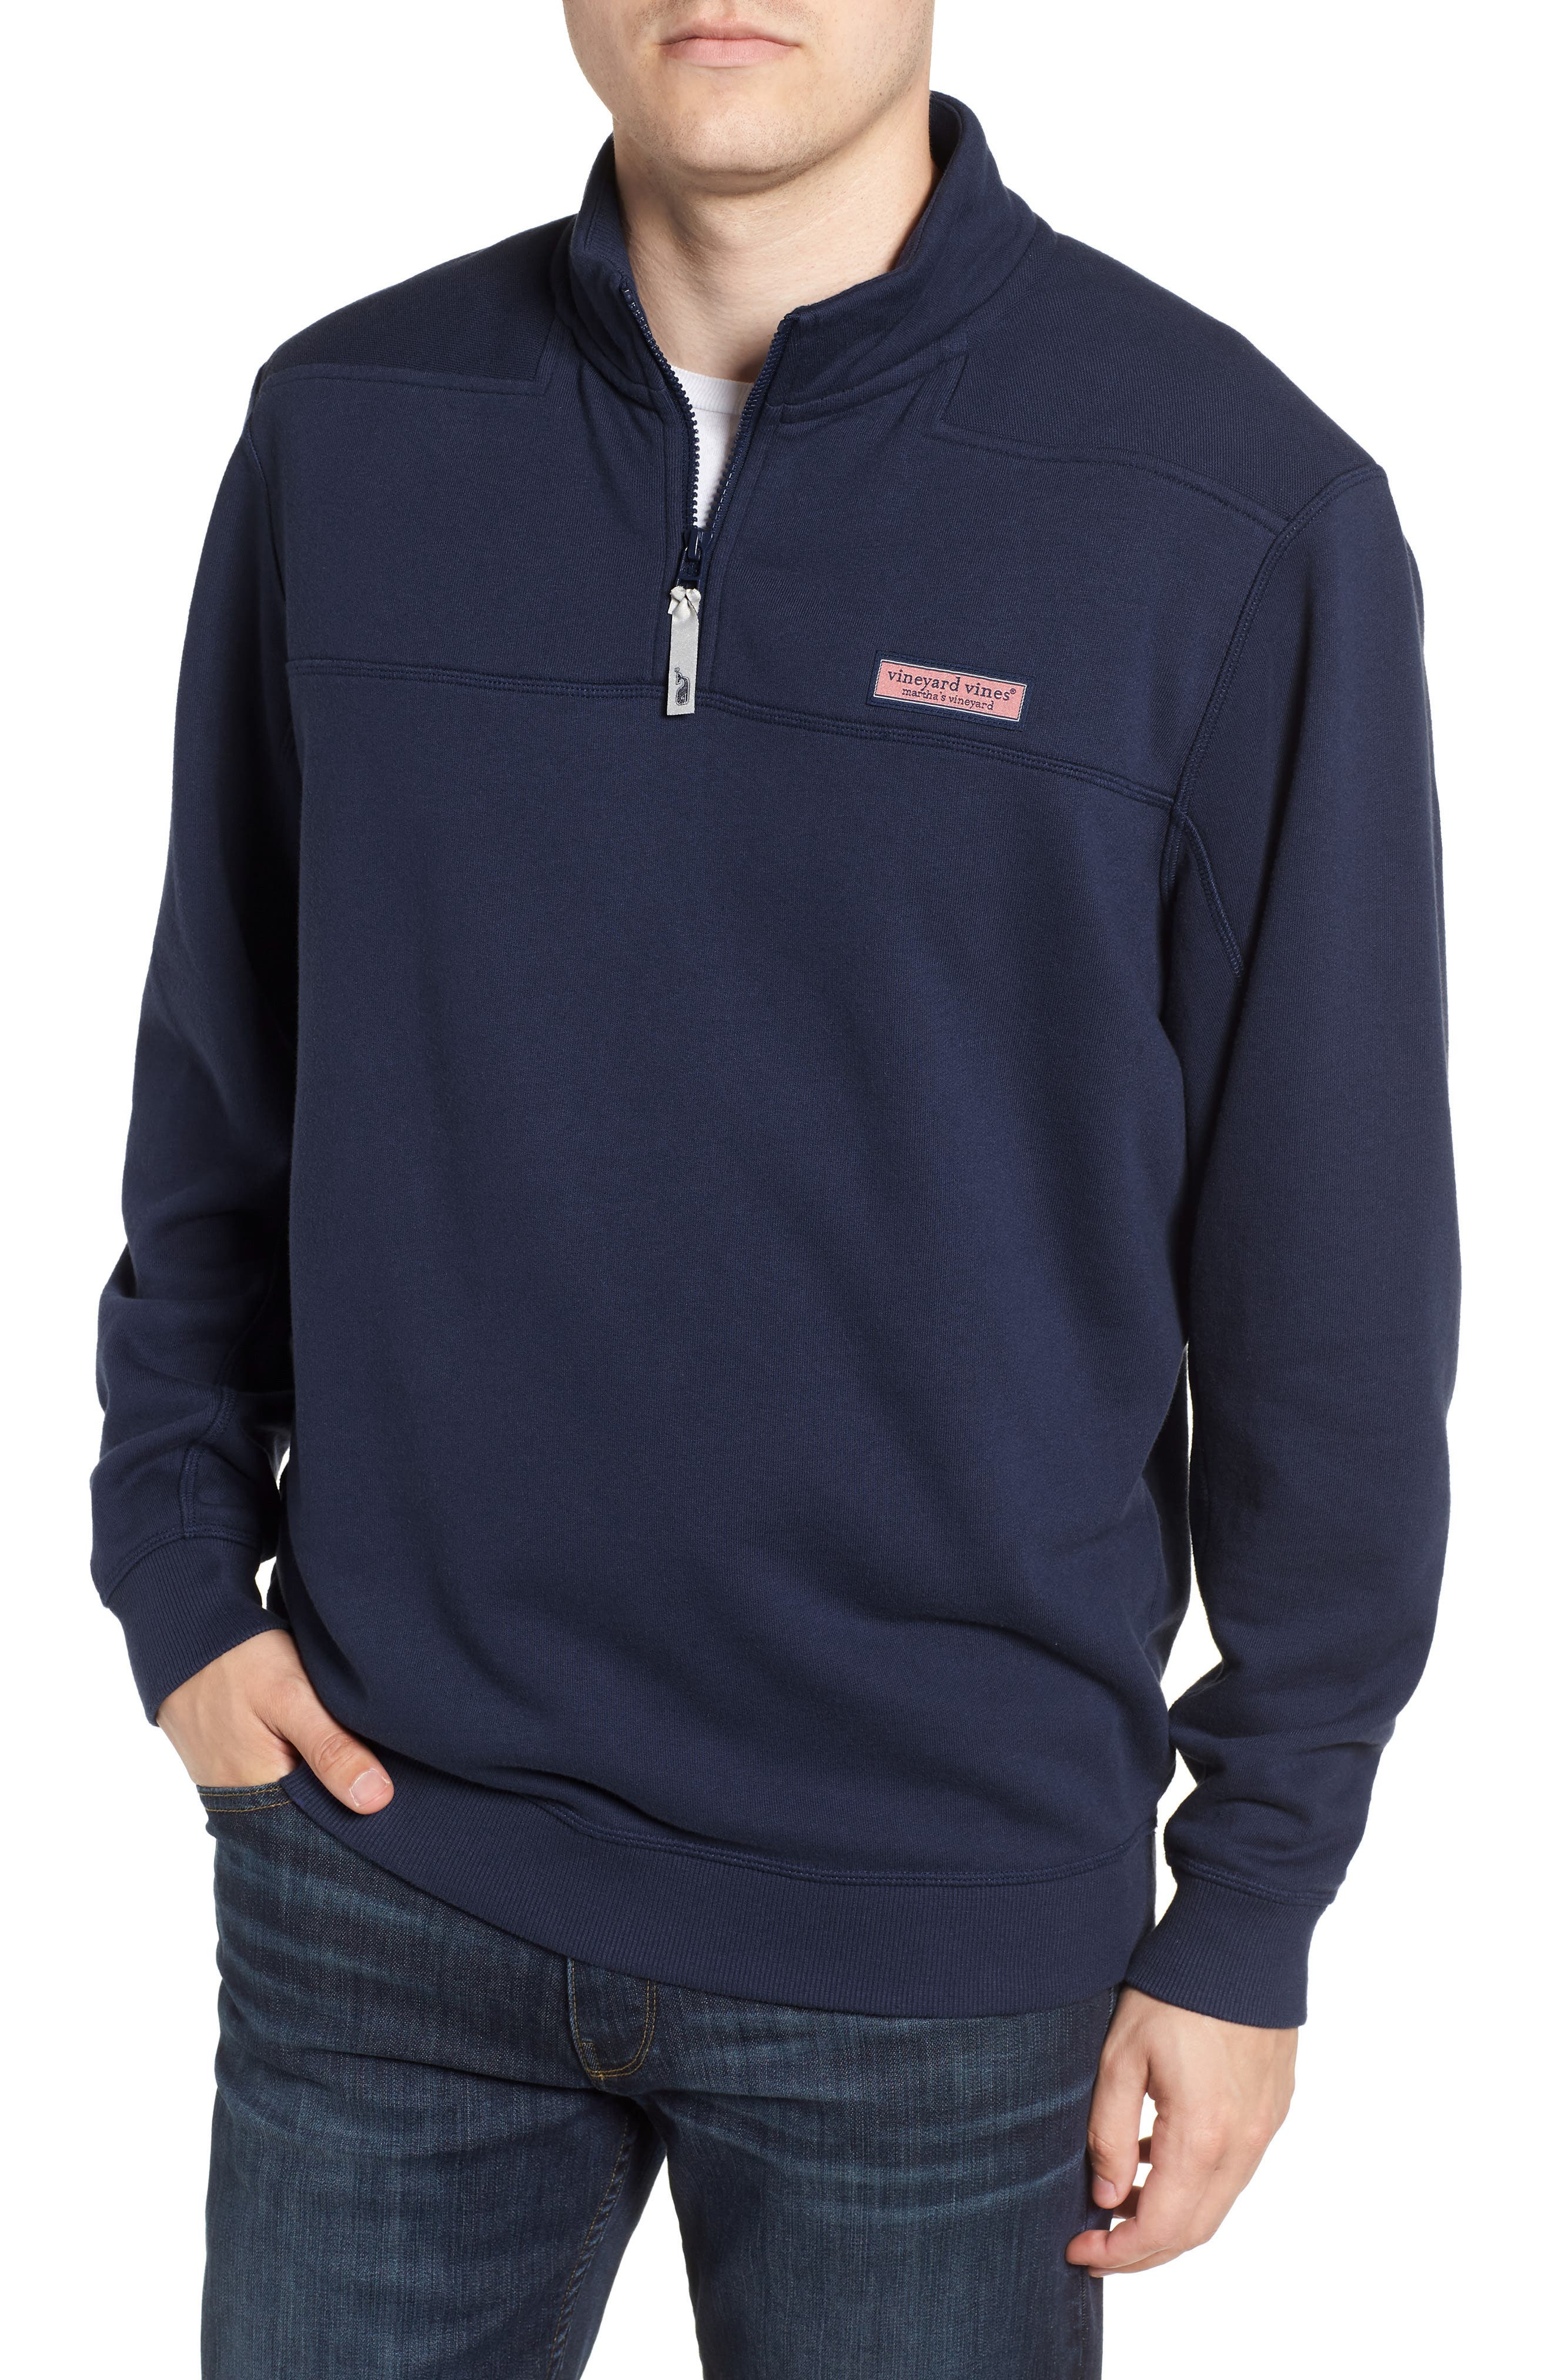 VINEYARD VINES Collegiate Half Zip Pullover, Main, color, VINEYARD NAVY